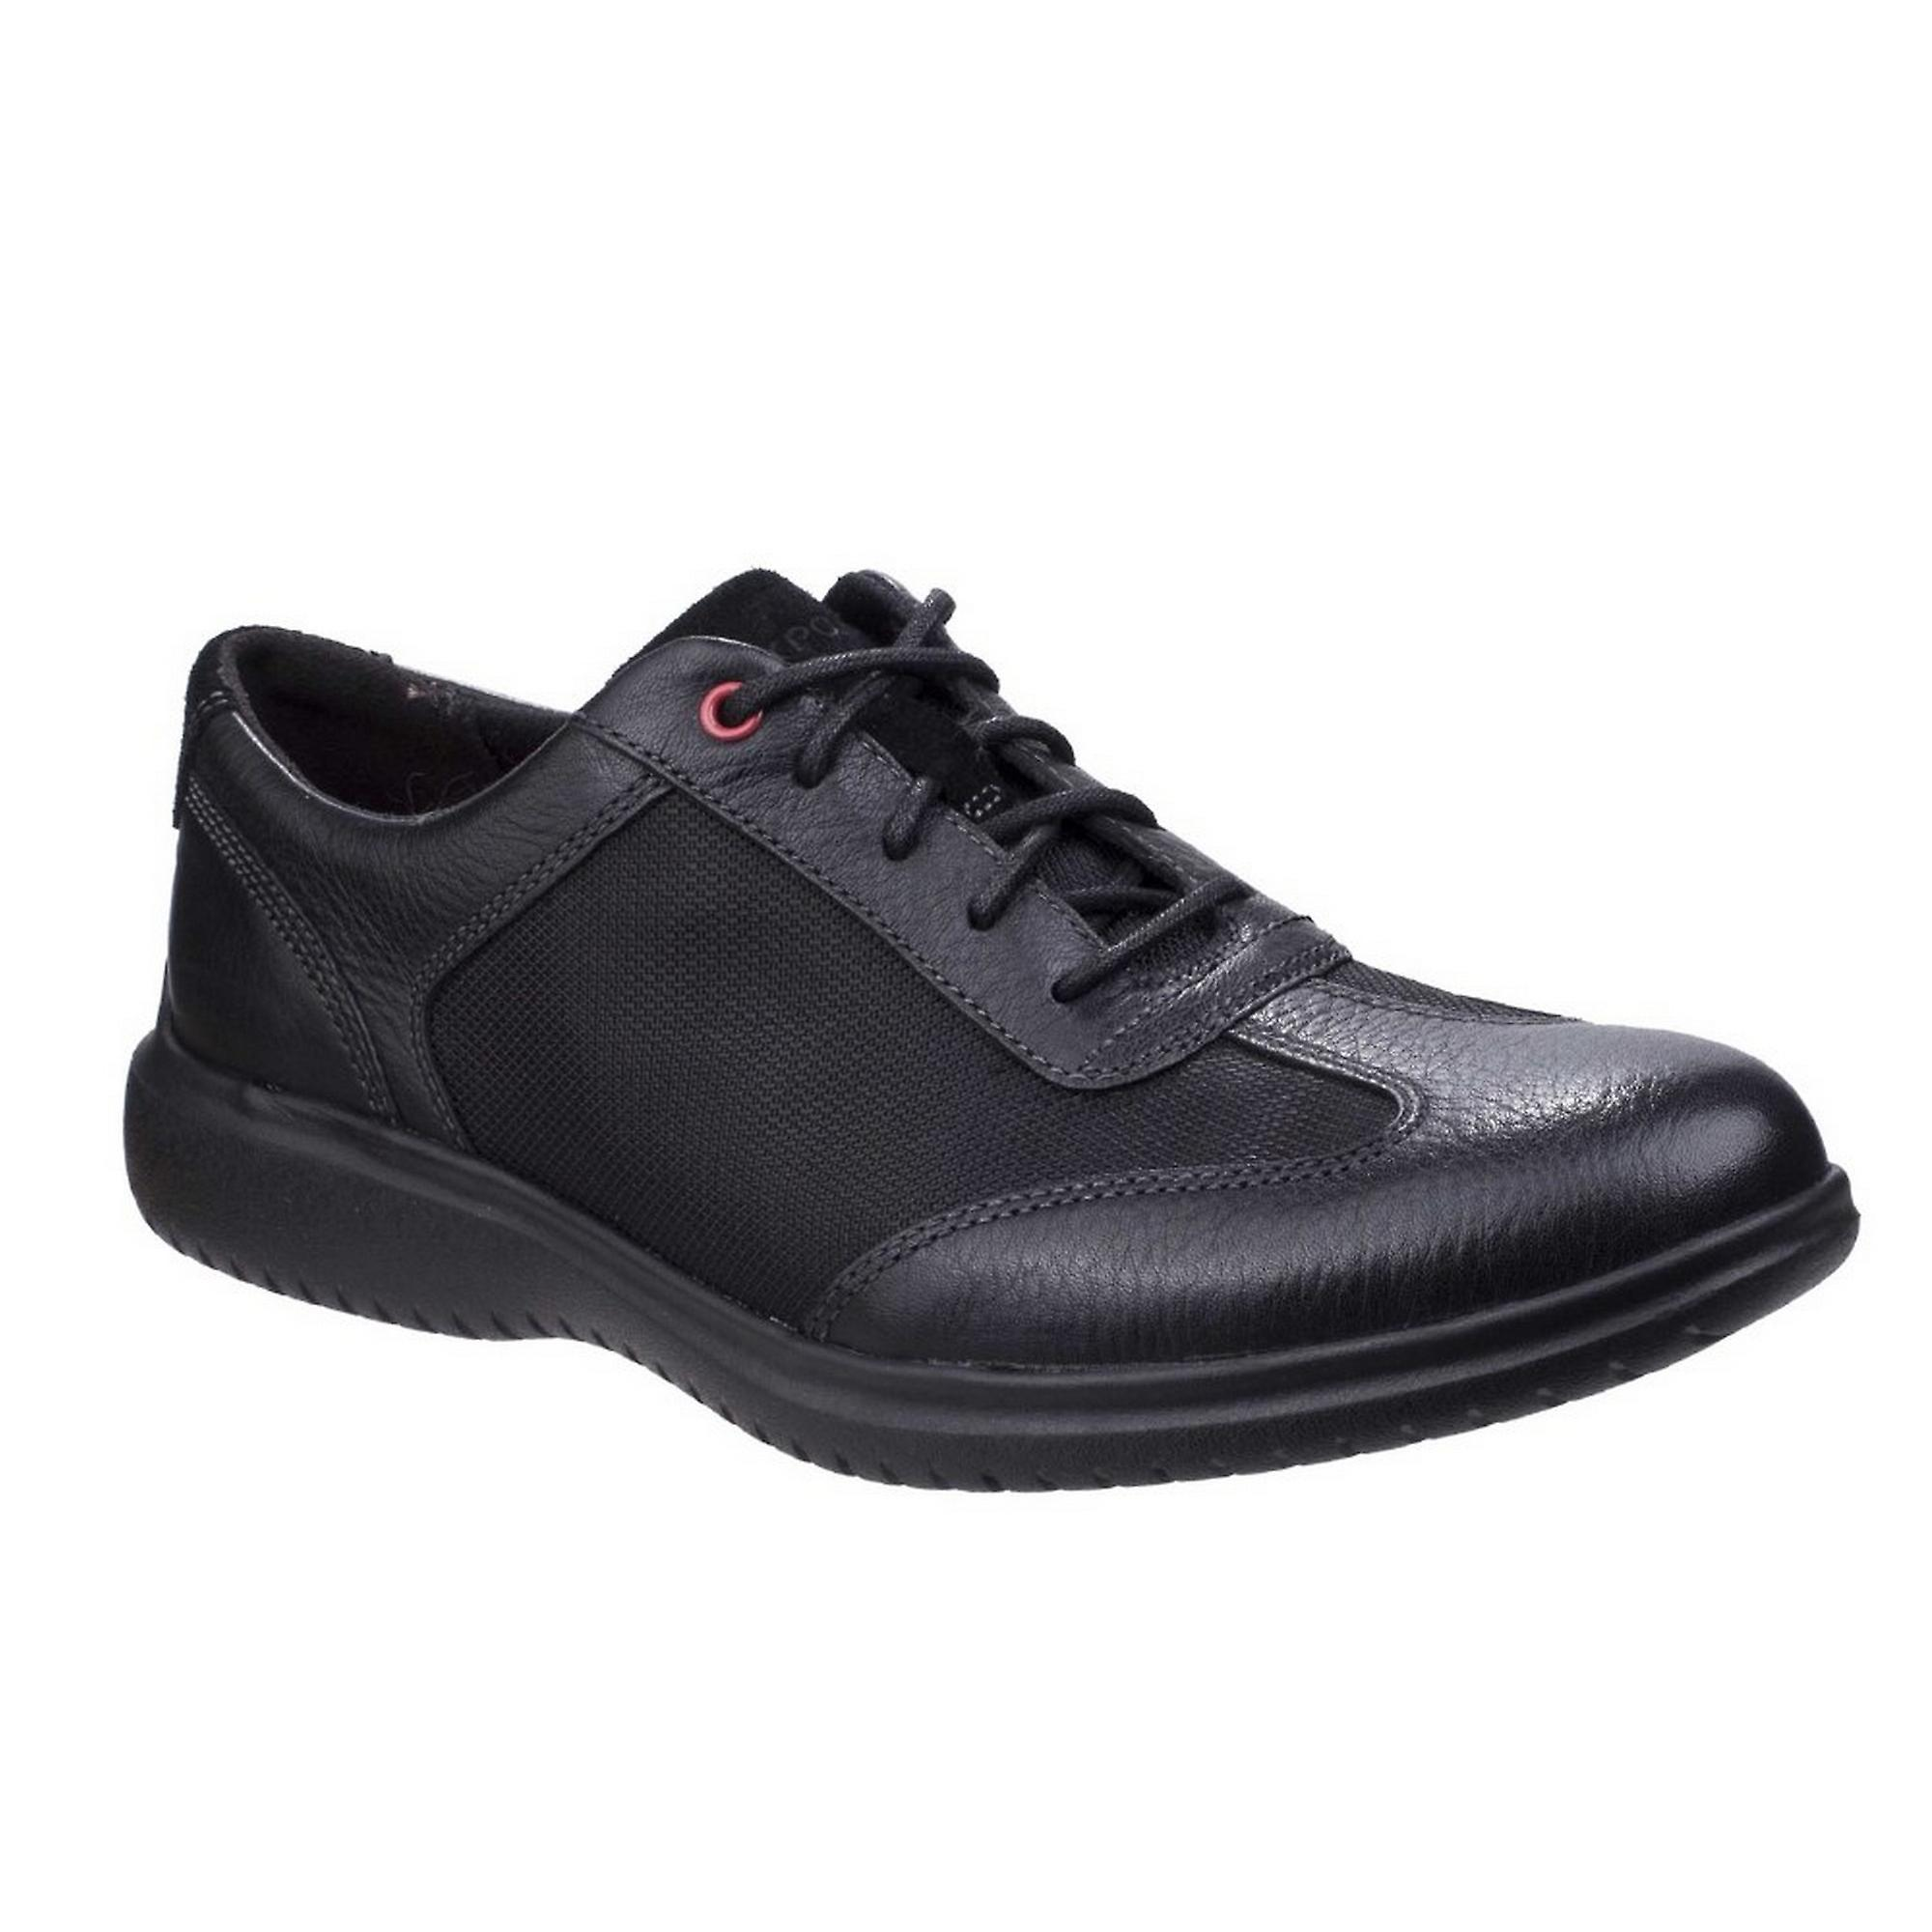 Rockport Mens DresSports II Fast Lace Up Leather Shoes